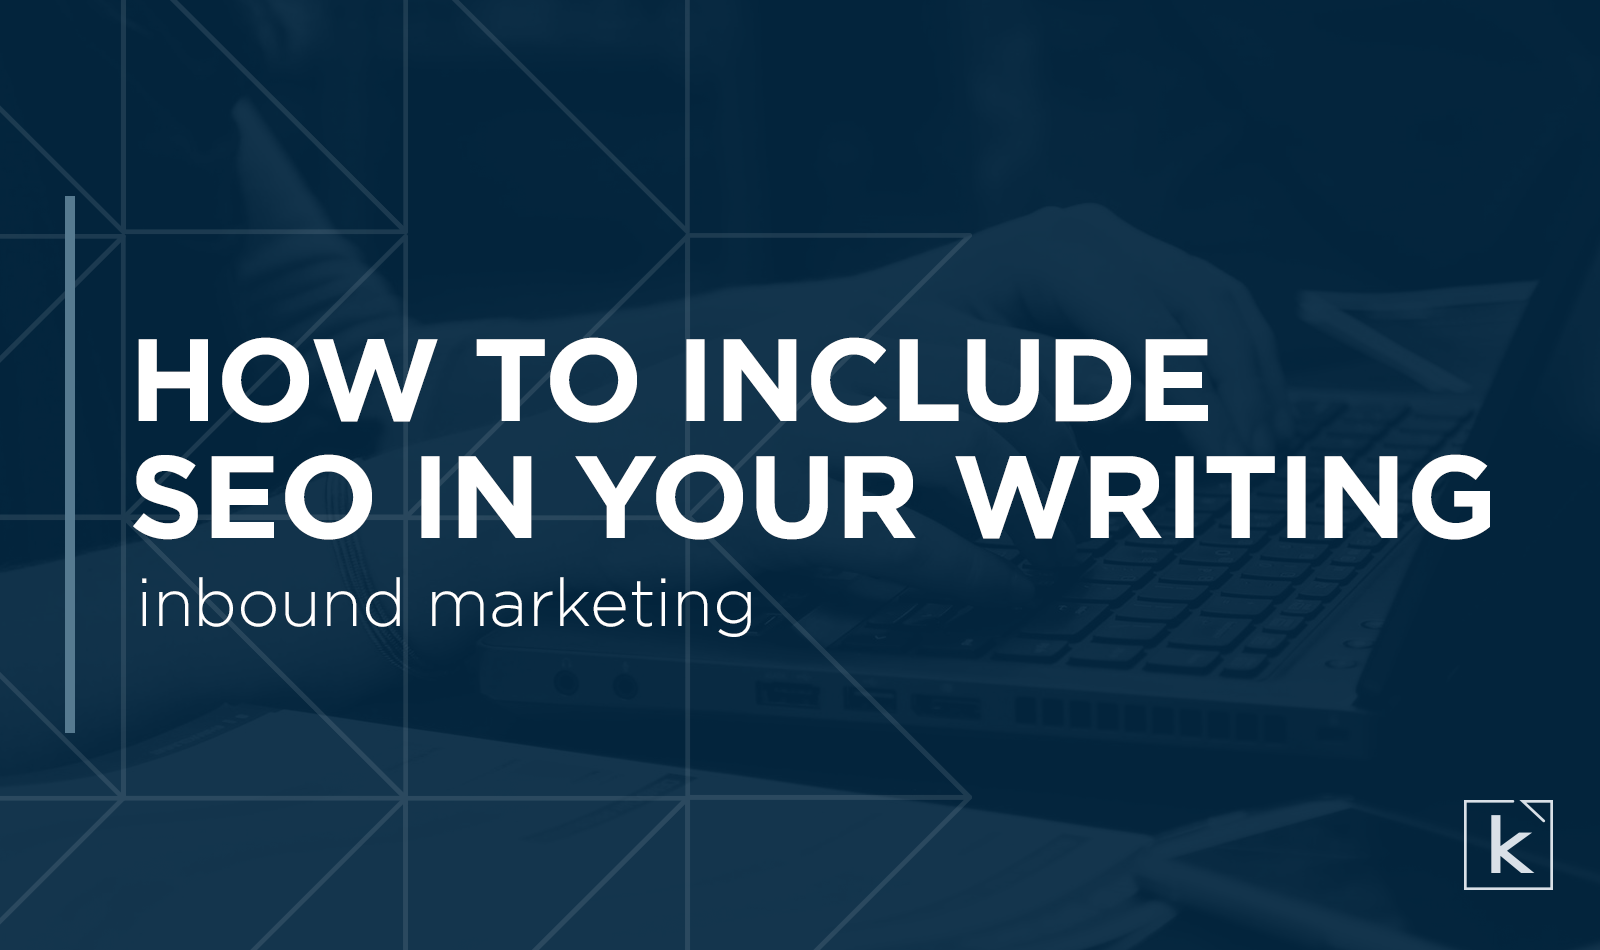 how-to-include-seo-in-your-writing